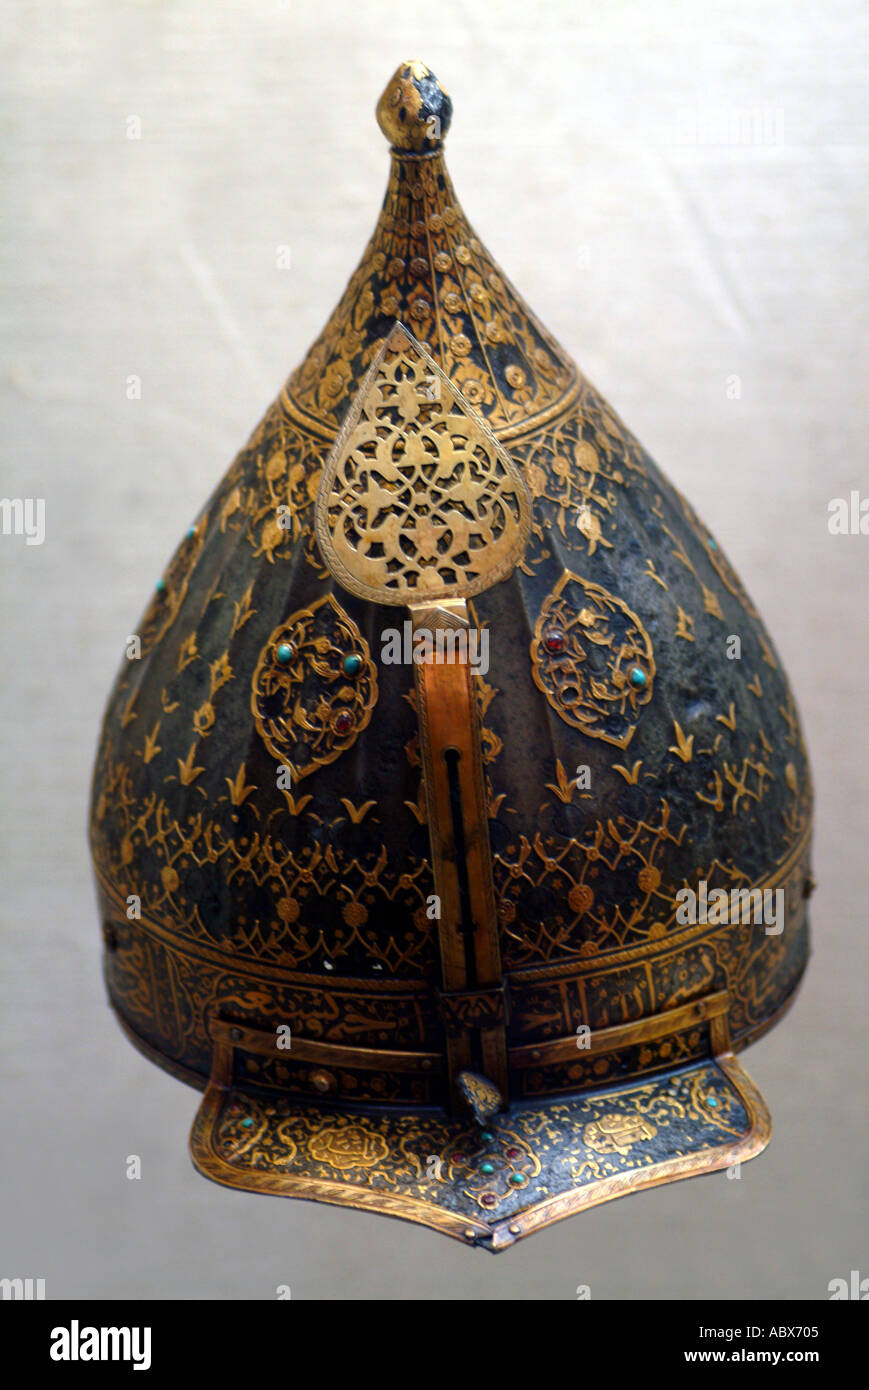 1500 C Ottoman Helmet Stock Photo 2418436 Alamy